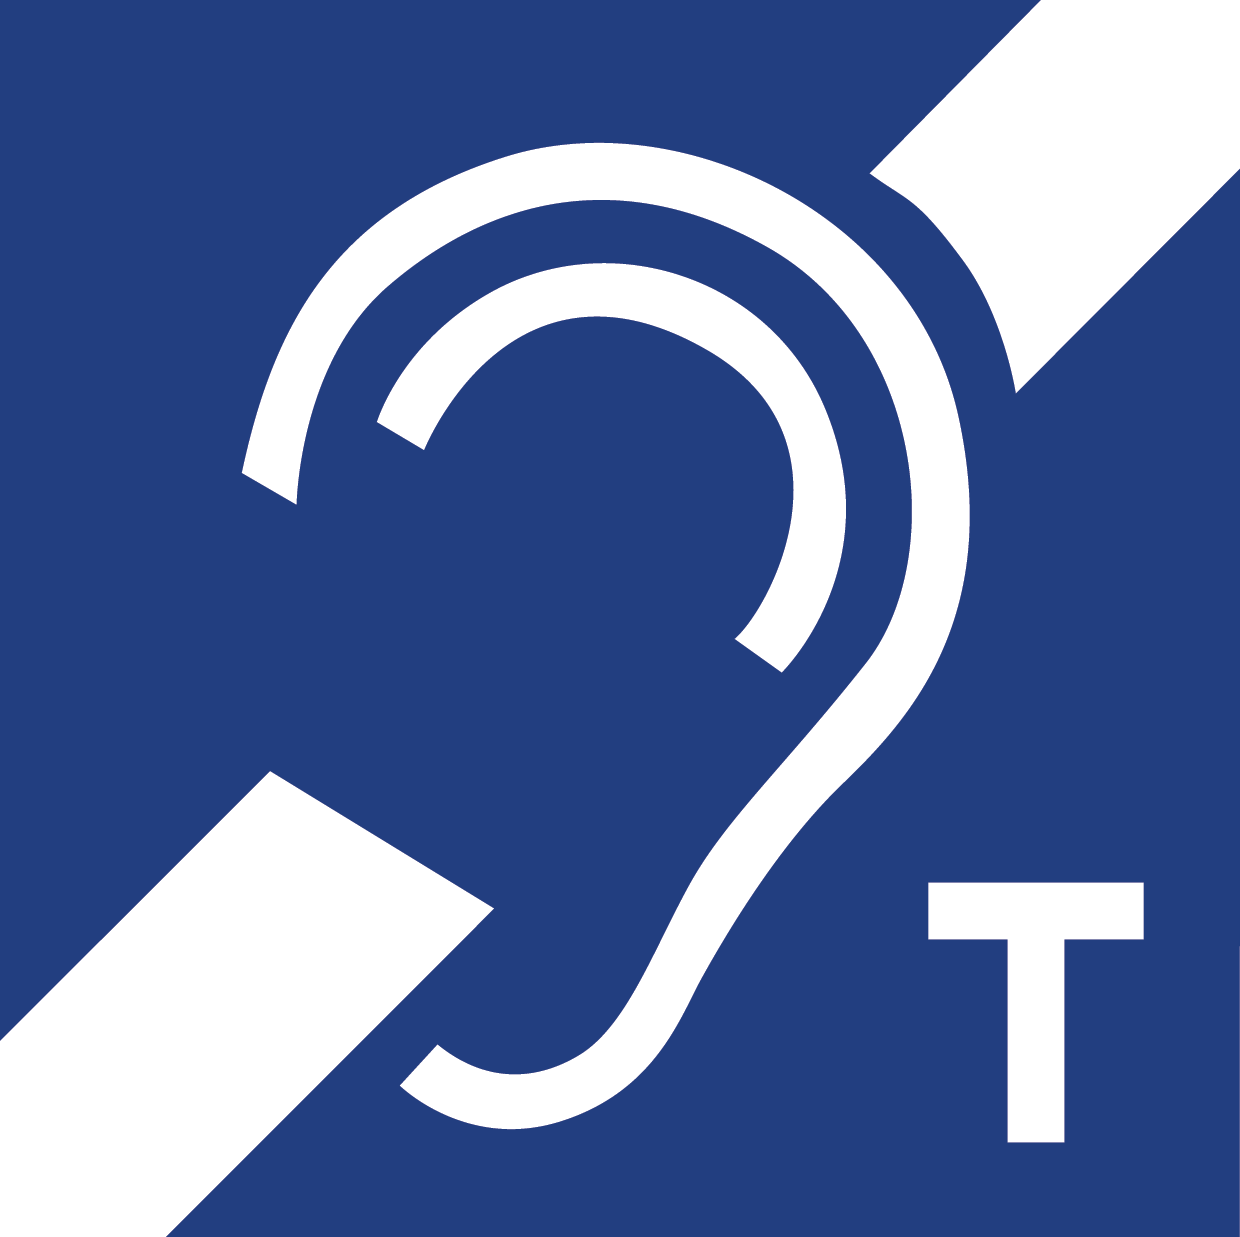 Hearing loop signs